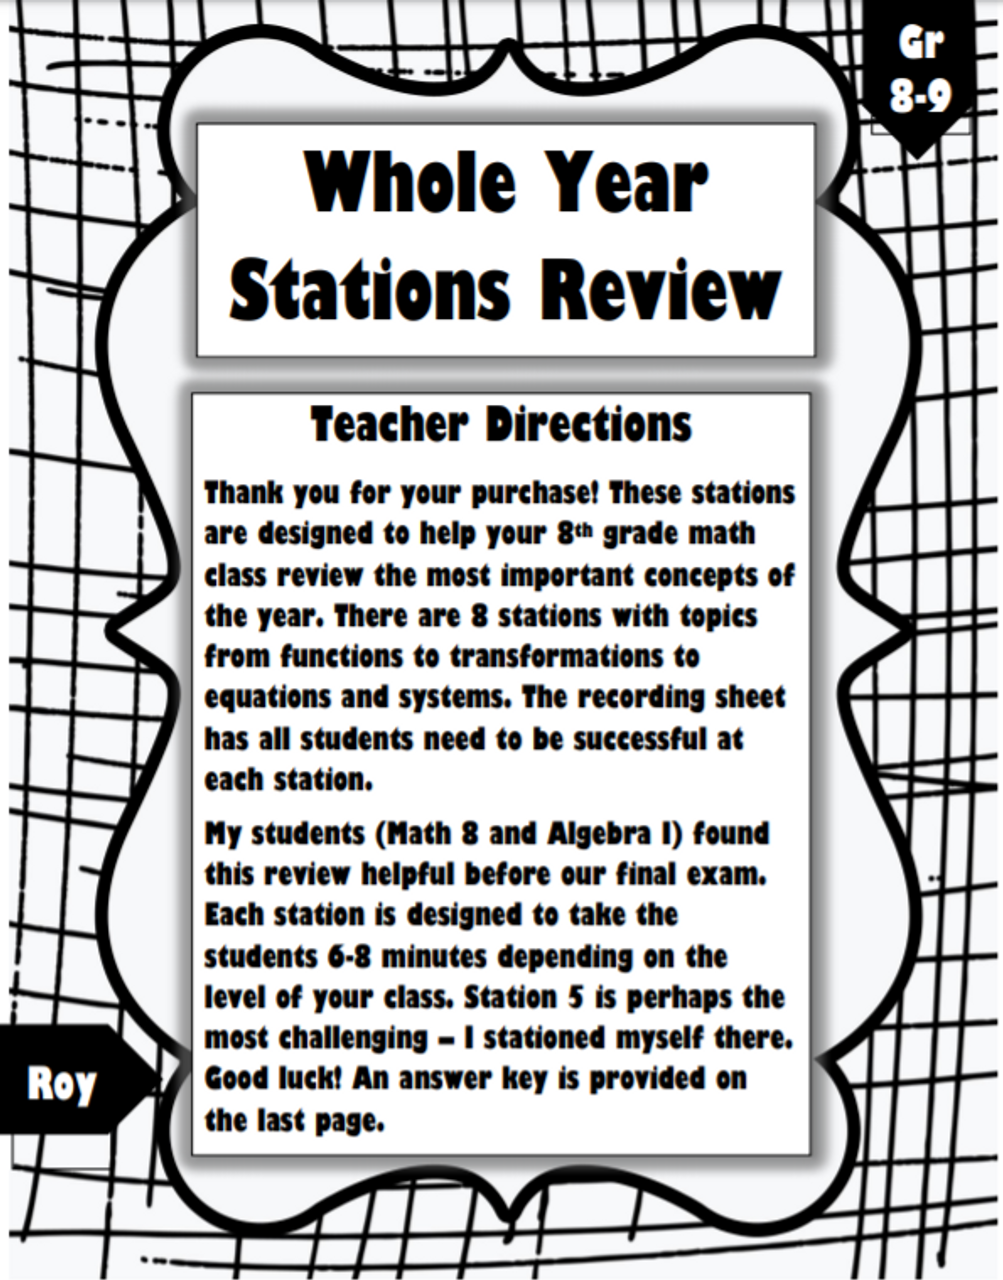 Whole Year Review: 8 Stations